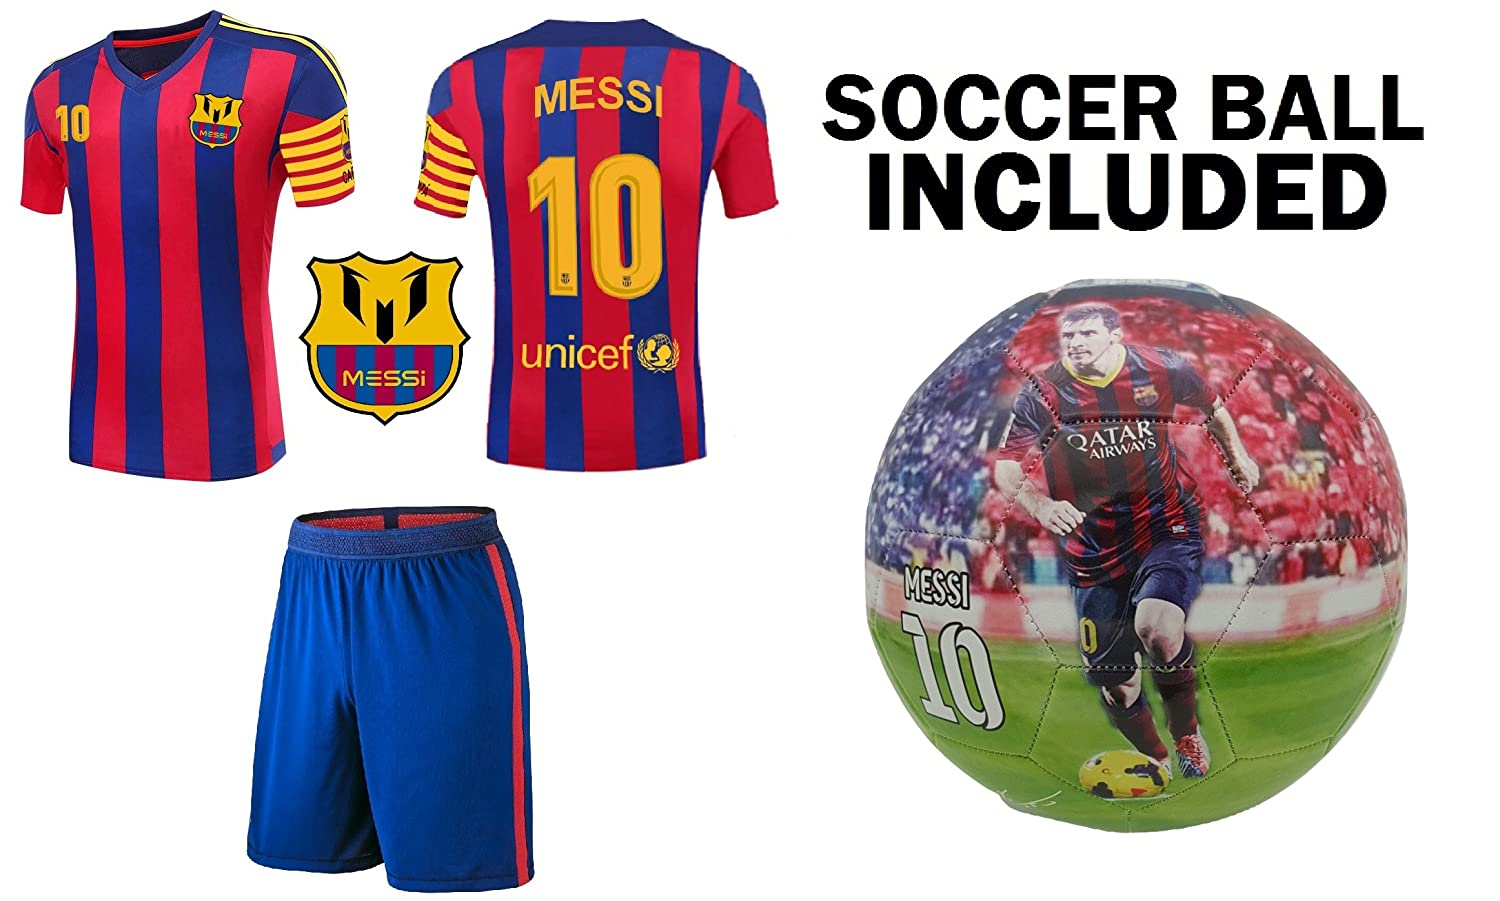 quality design 16943 947d6 Lionel Messi #10 Soccer Jersey Youth - PREMIUM Messi Jersey Gift Set for  Kids - Leo Messi Jersey + Shorts + MESSI BALL Size 5 Football Futbol Gift  for ...